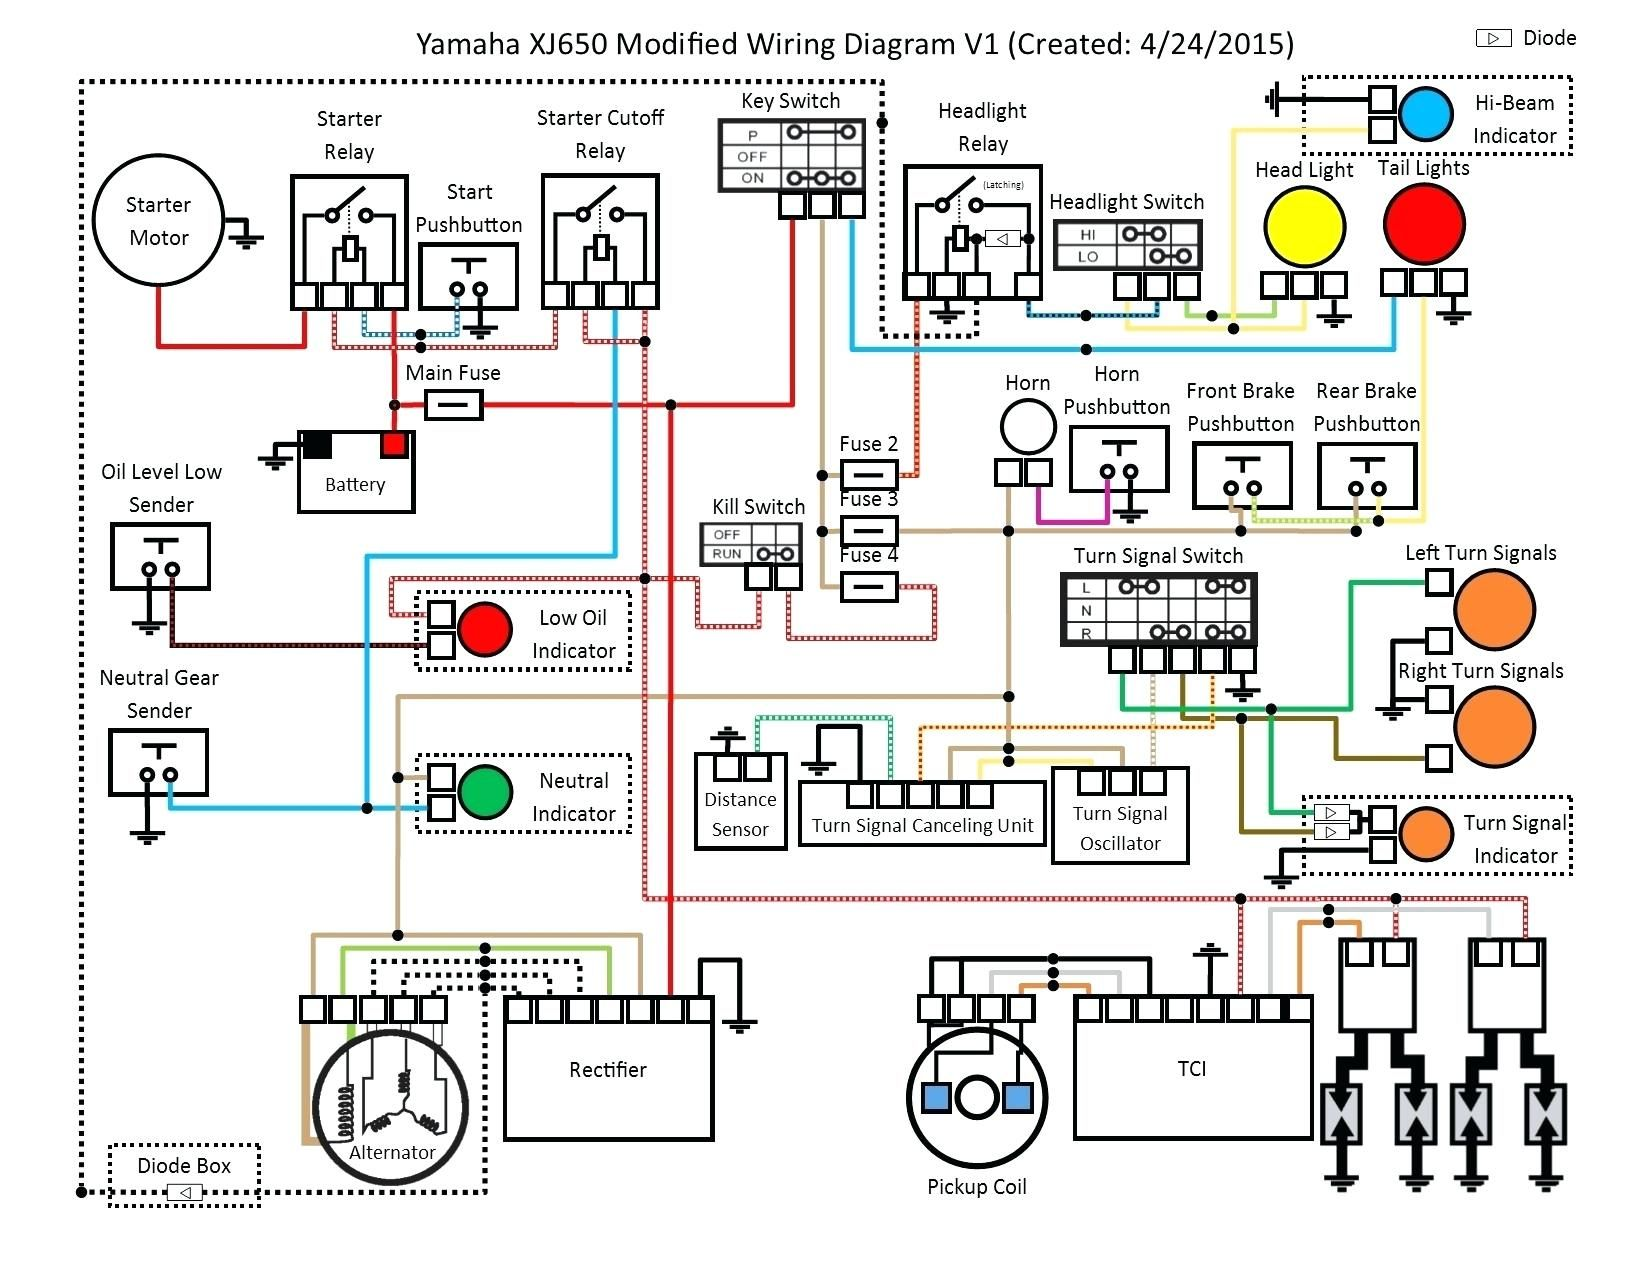 hight resolution of xrm headlight wiring diagram wiring diagram blog xrm headlight wiring diagram source honda xrm motorcycle